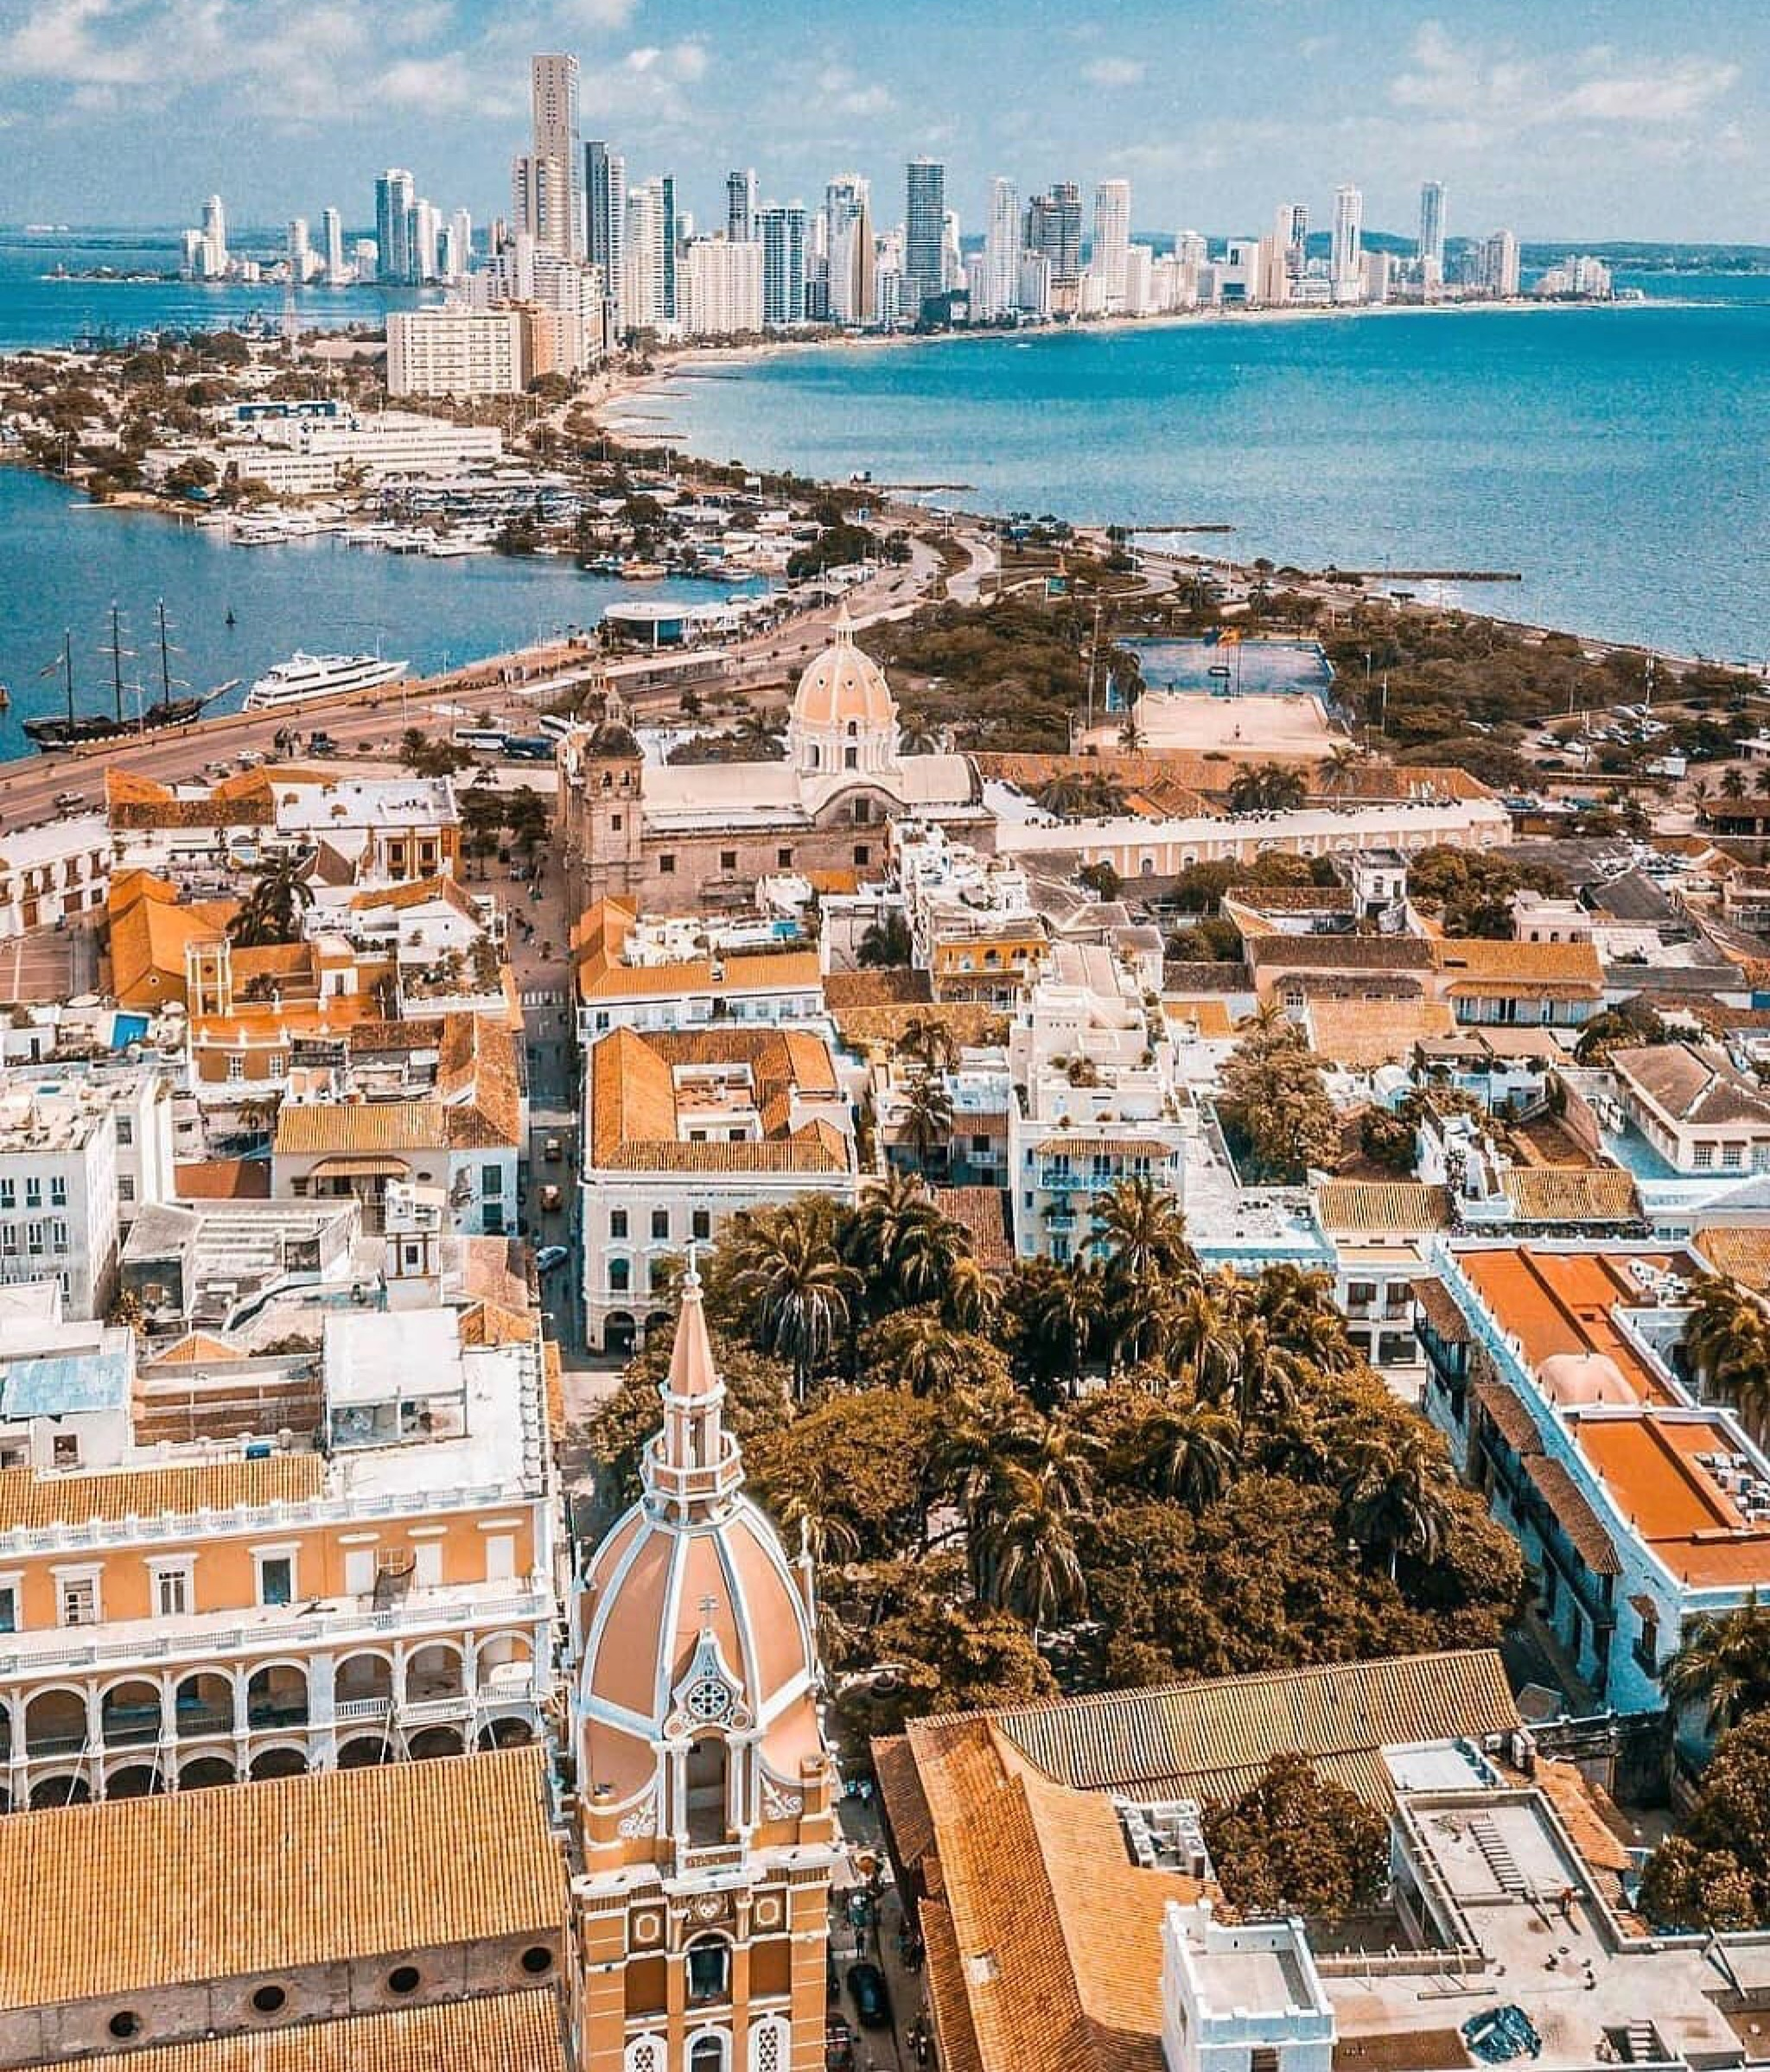 Cartagena, Colombia